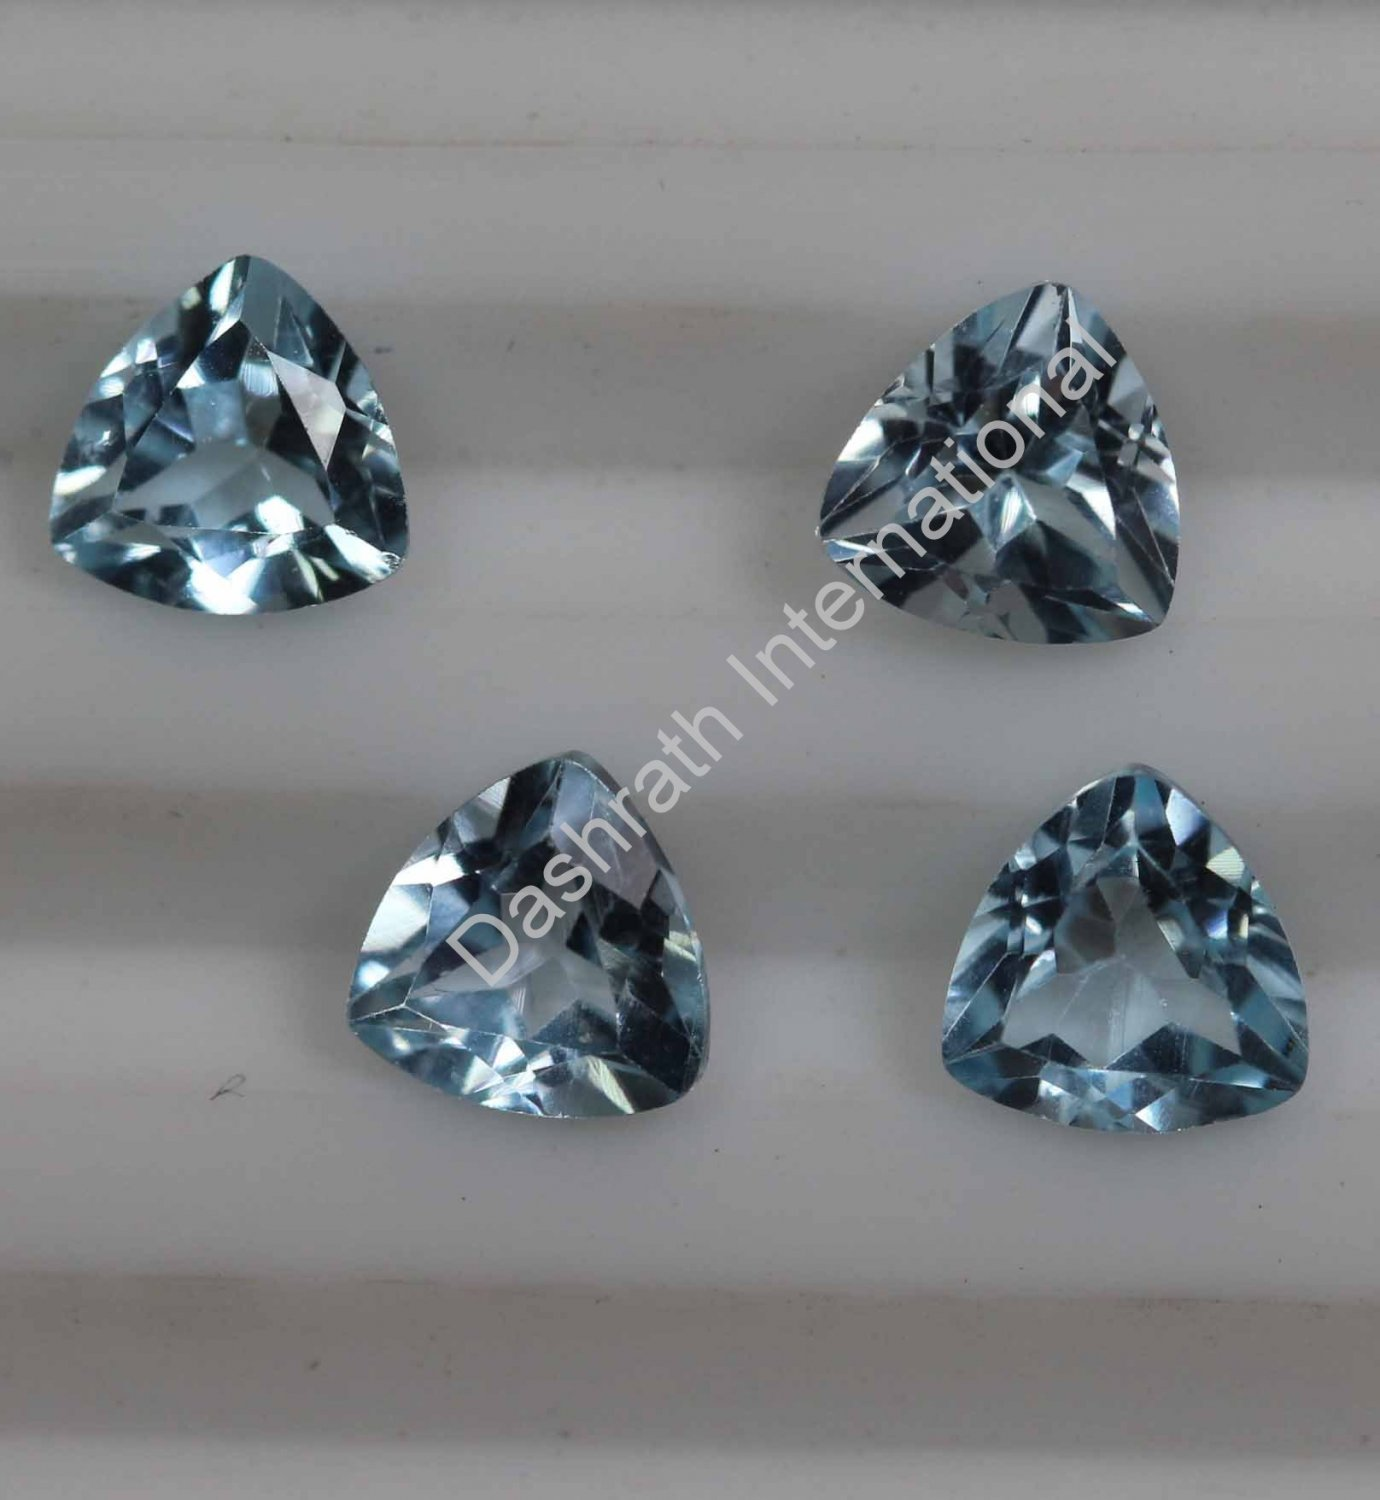 5mm Natural Sky Blue Topaz Faceted Cut Trillion 10 Pieces Lot Top Quality Loose Gemstone